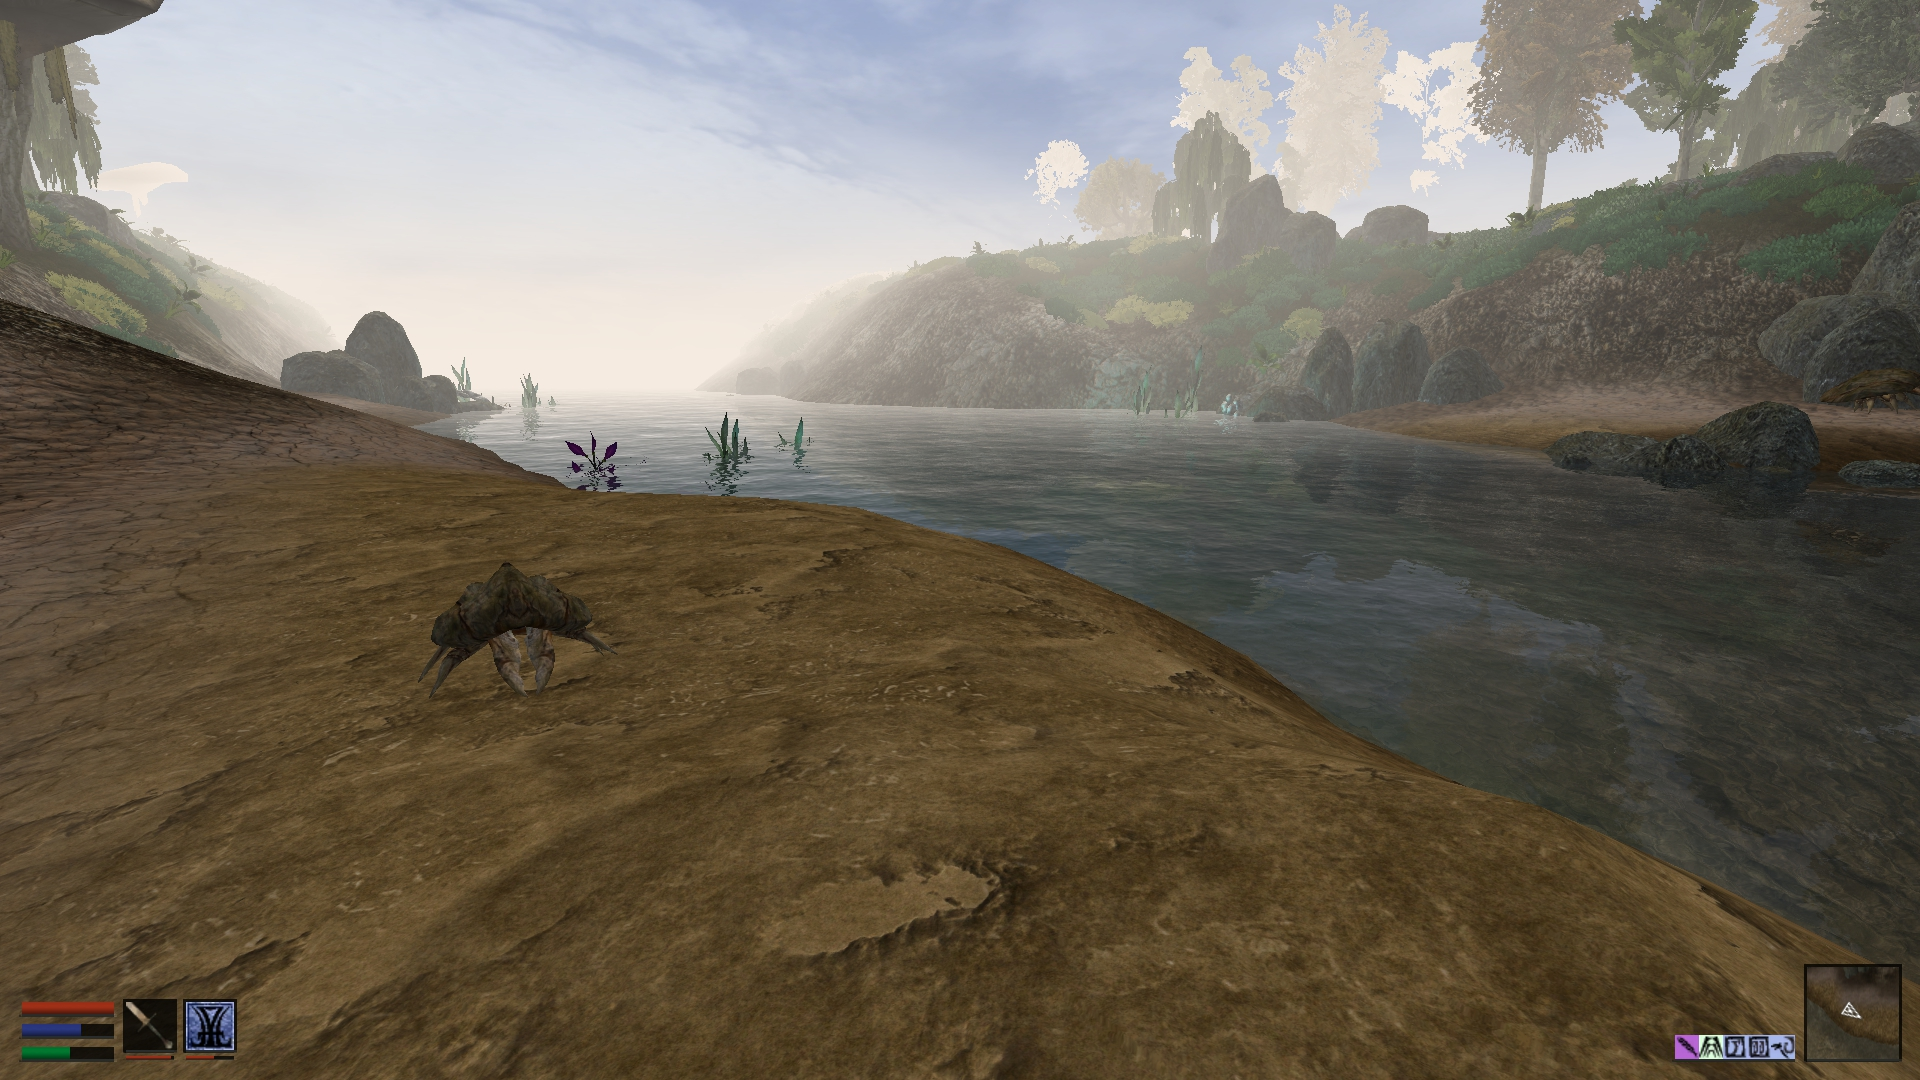 OpenMW 0 45 RC for Win 10 64bit and 300+ mods - openmw org